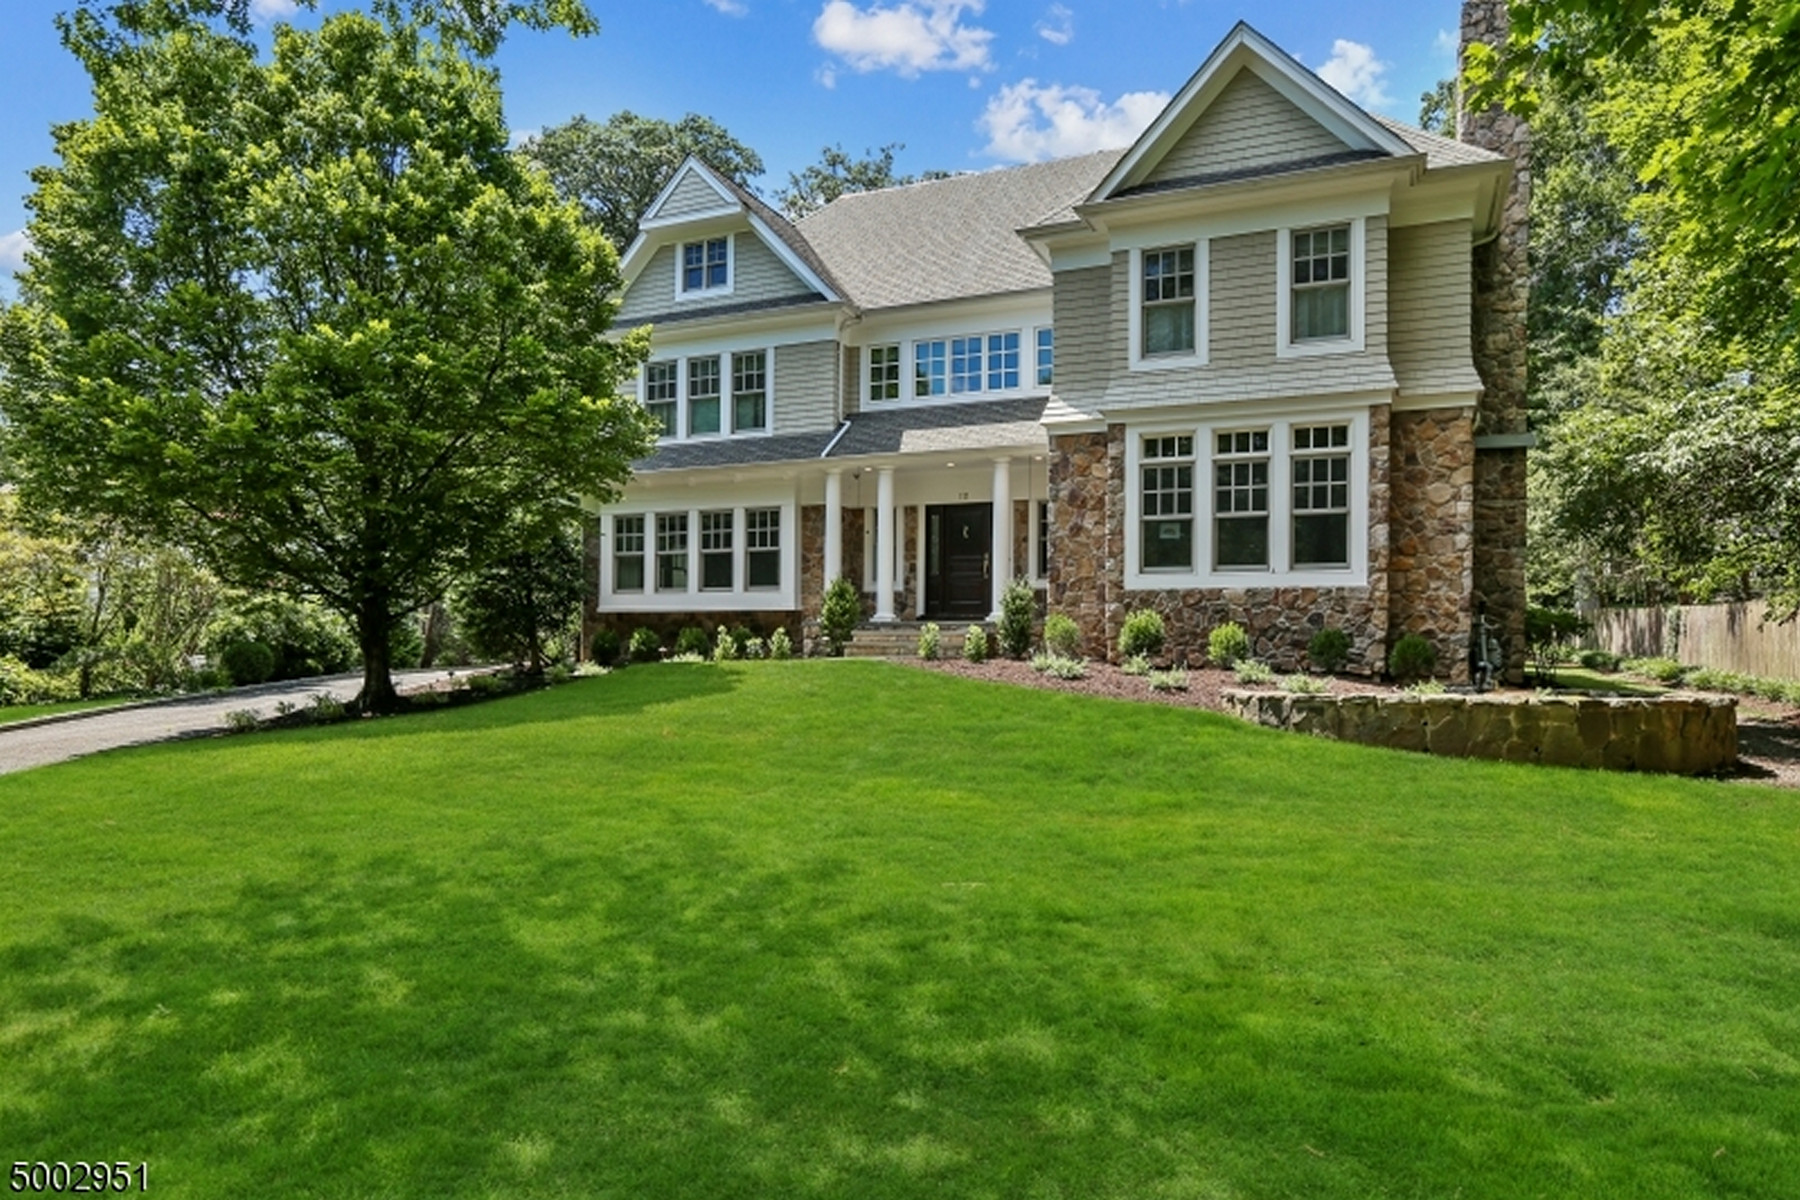 Single Family Homes for Sale at Northside Colonial Close To Downtown 111 Whittredge Road, Summit, New Jersey 07901 United States